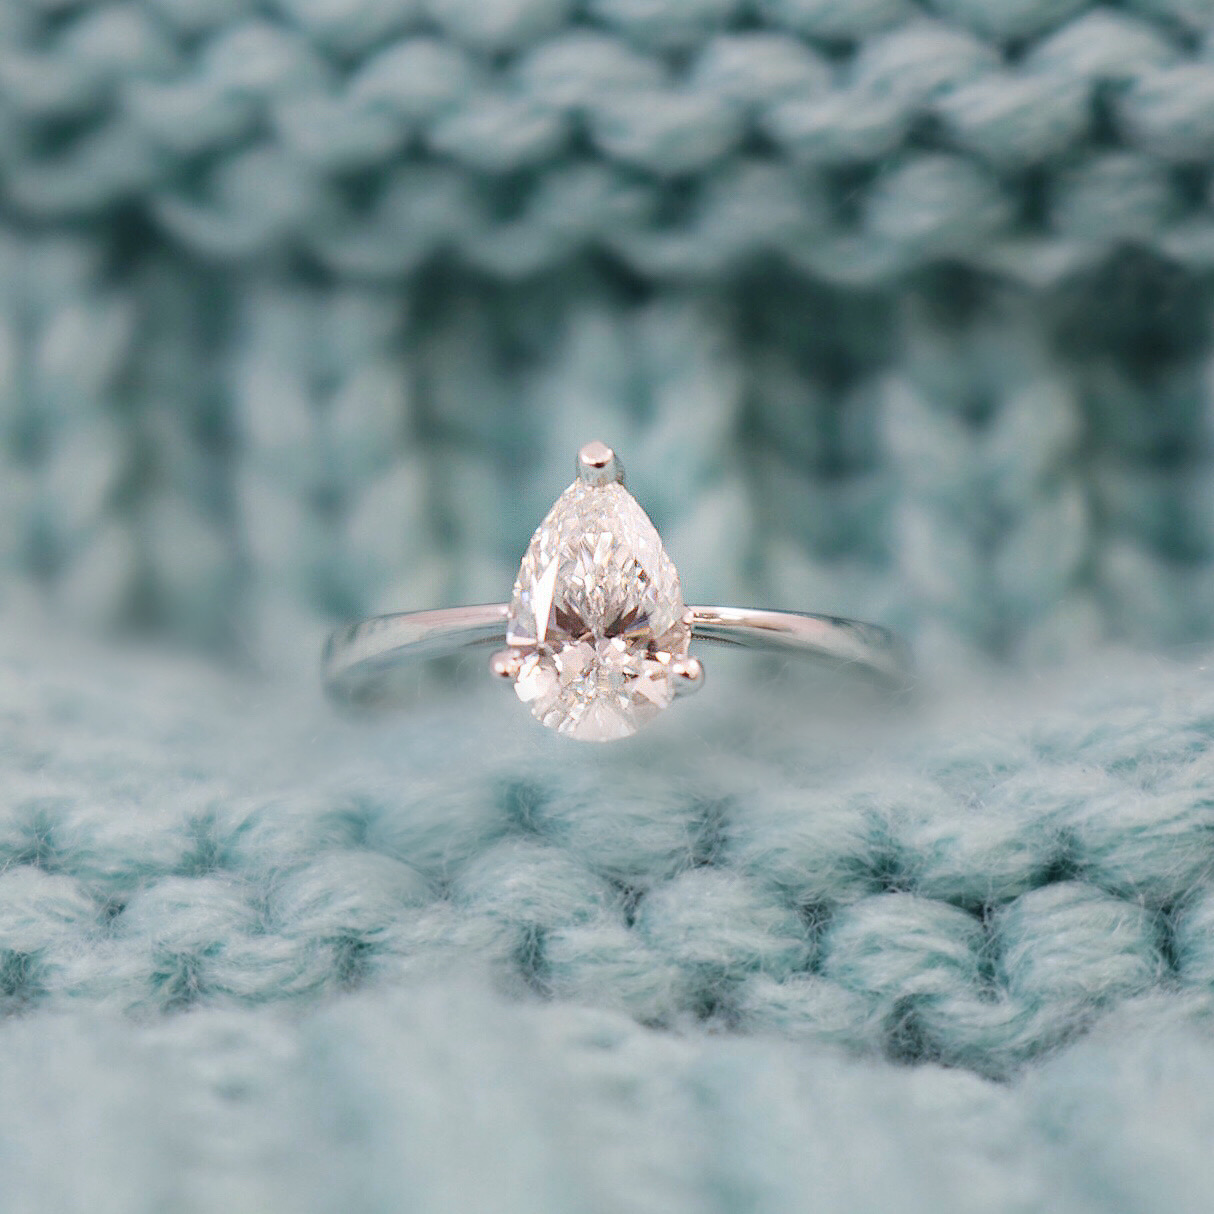 Solitaire Diamond 2020 Engagement Ring Trends